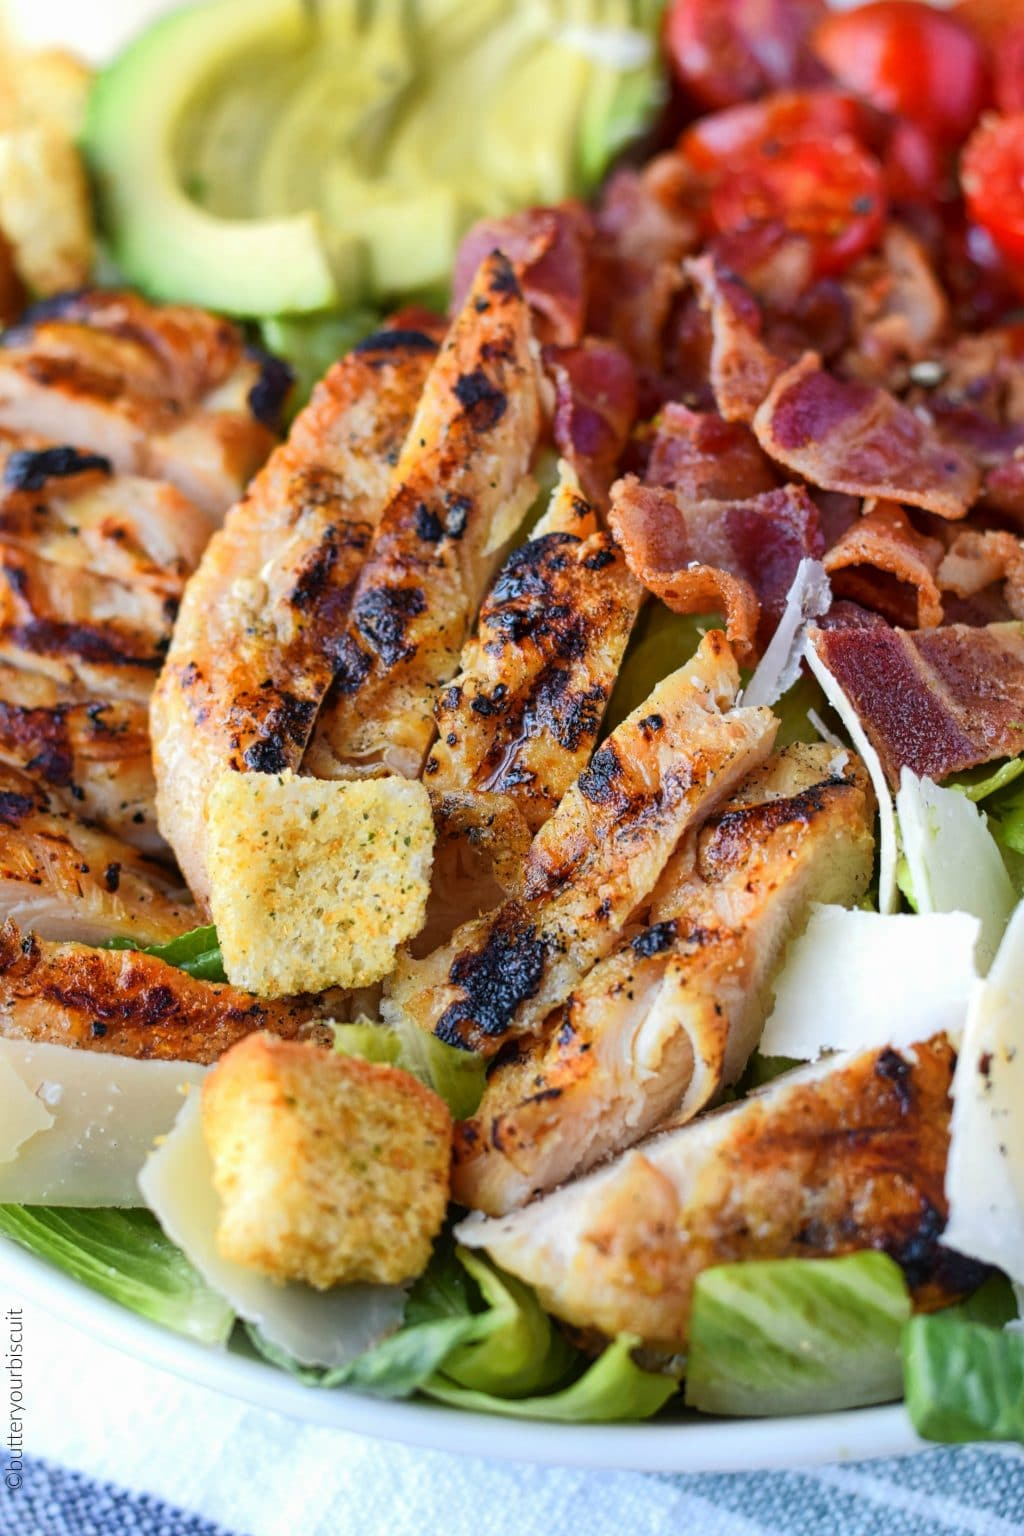 grilled chicken on the salad